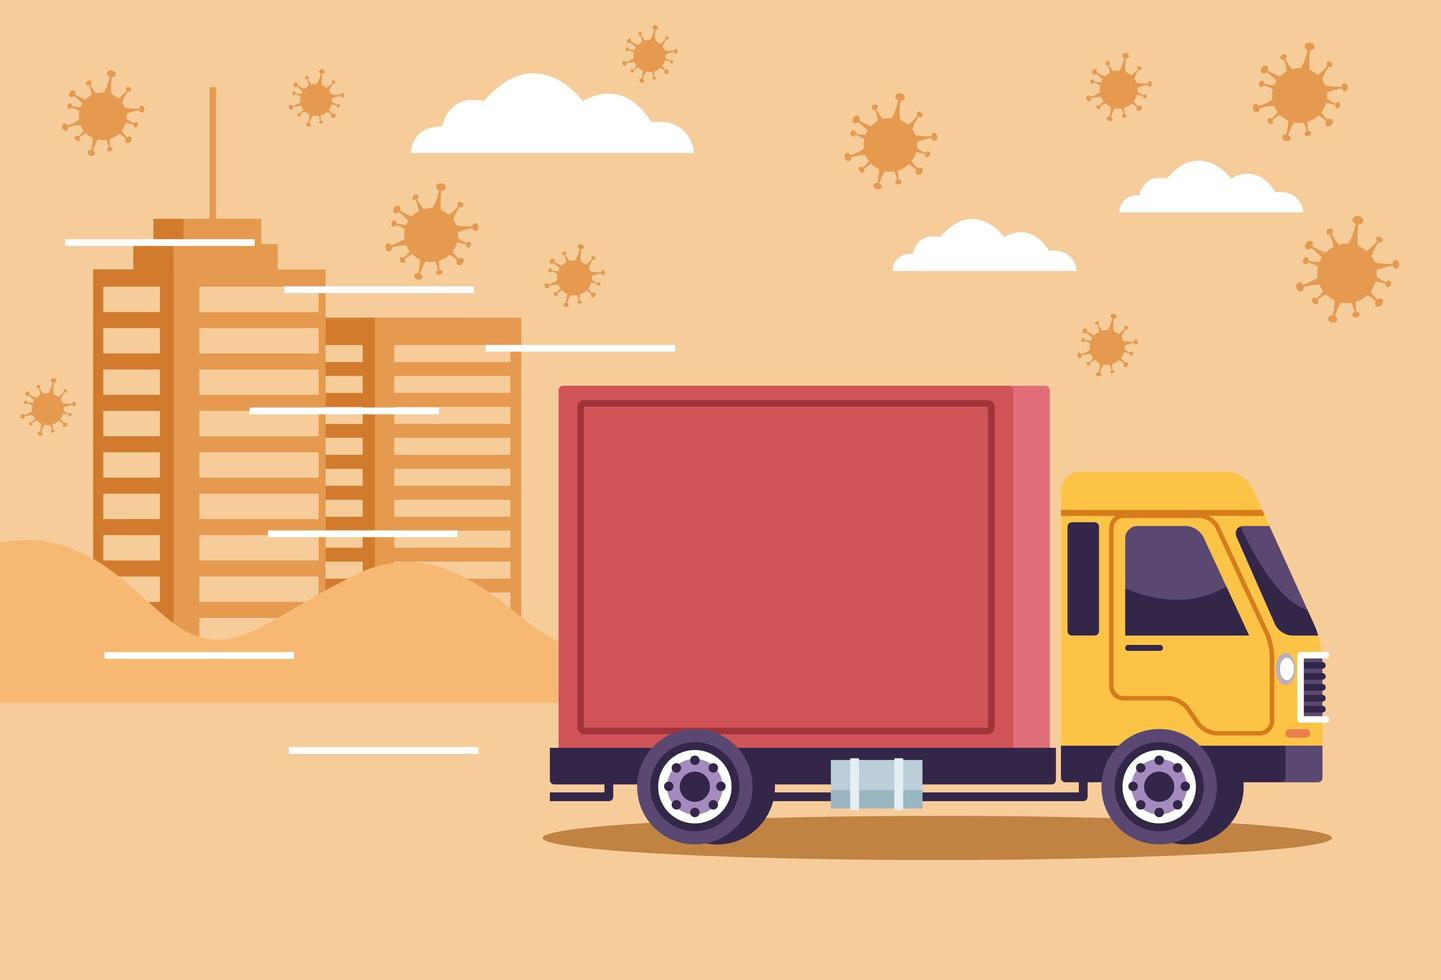 Truck delivery with COVID 19 viruses vector